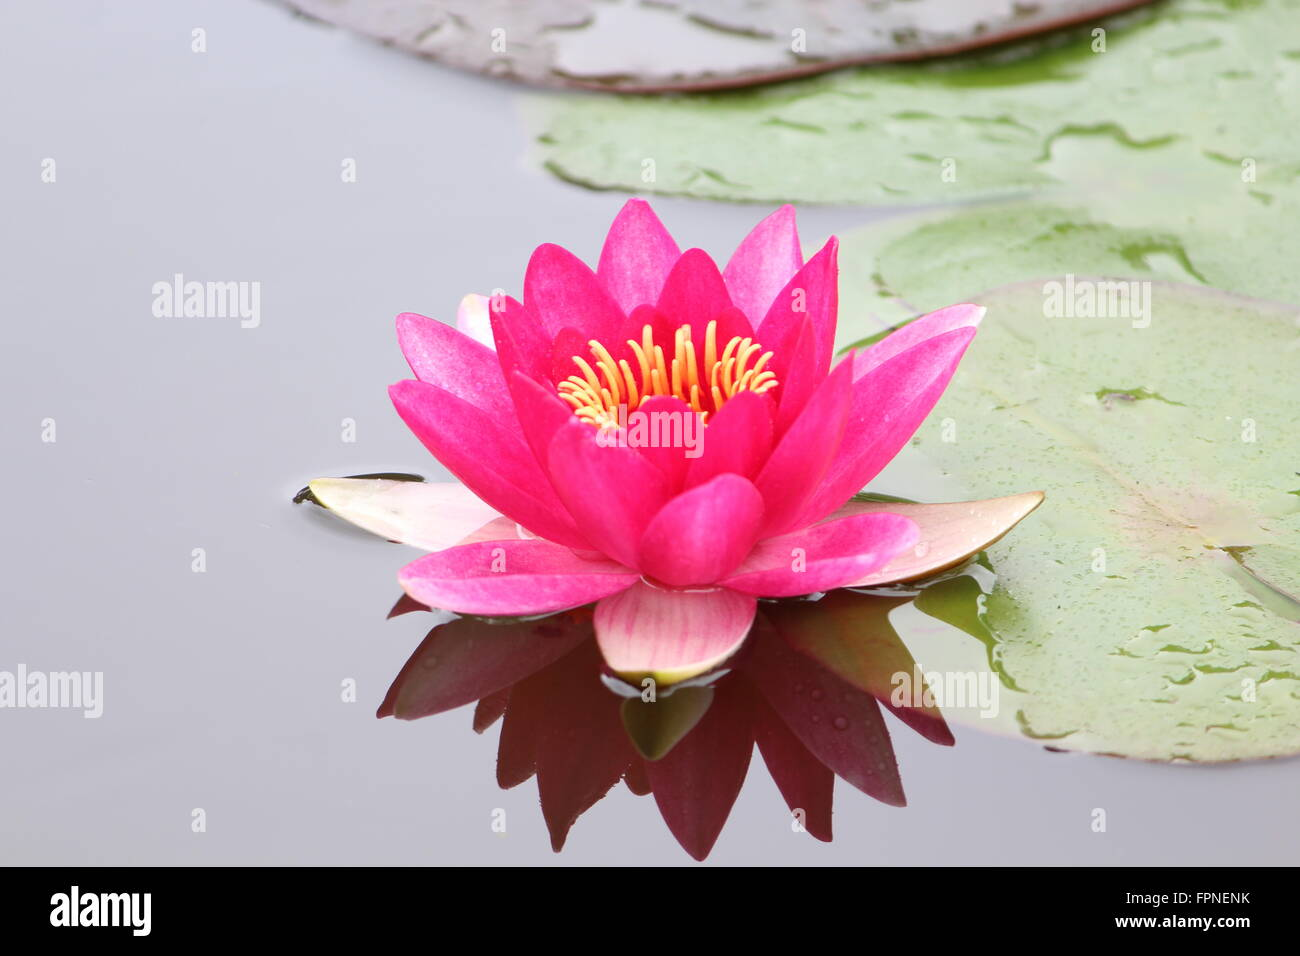 Indian Flower Names With Images Flower Names For Children You